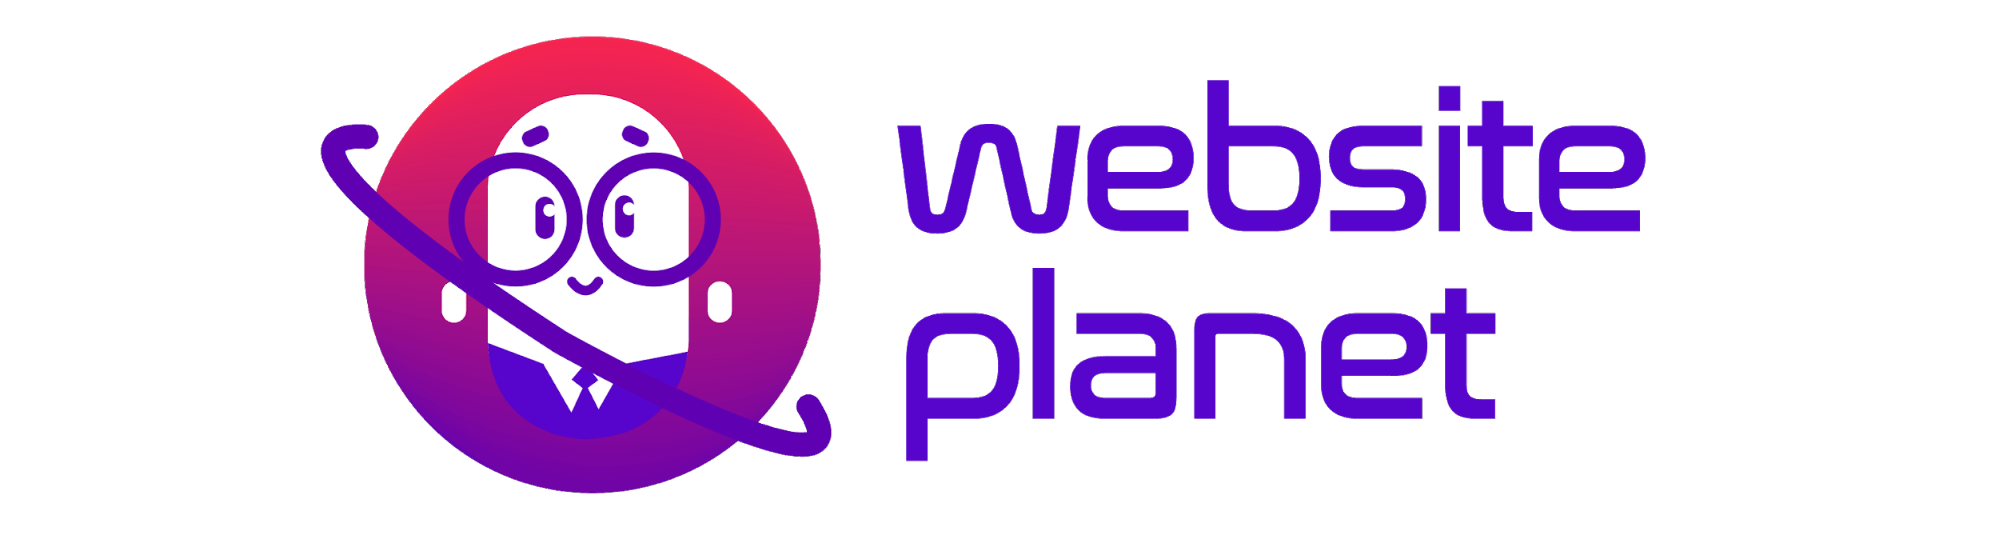 Website Planet logo from Fiverr - $40